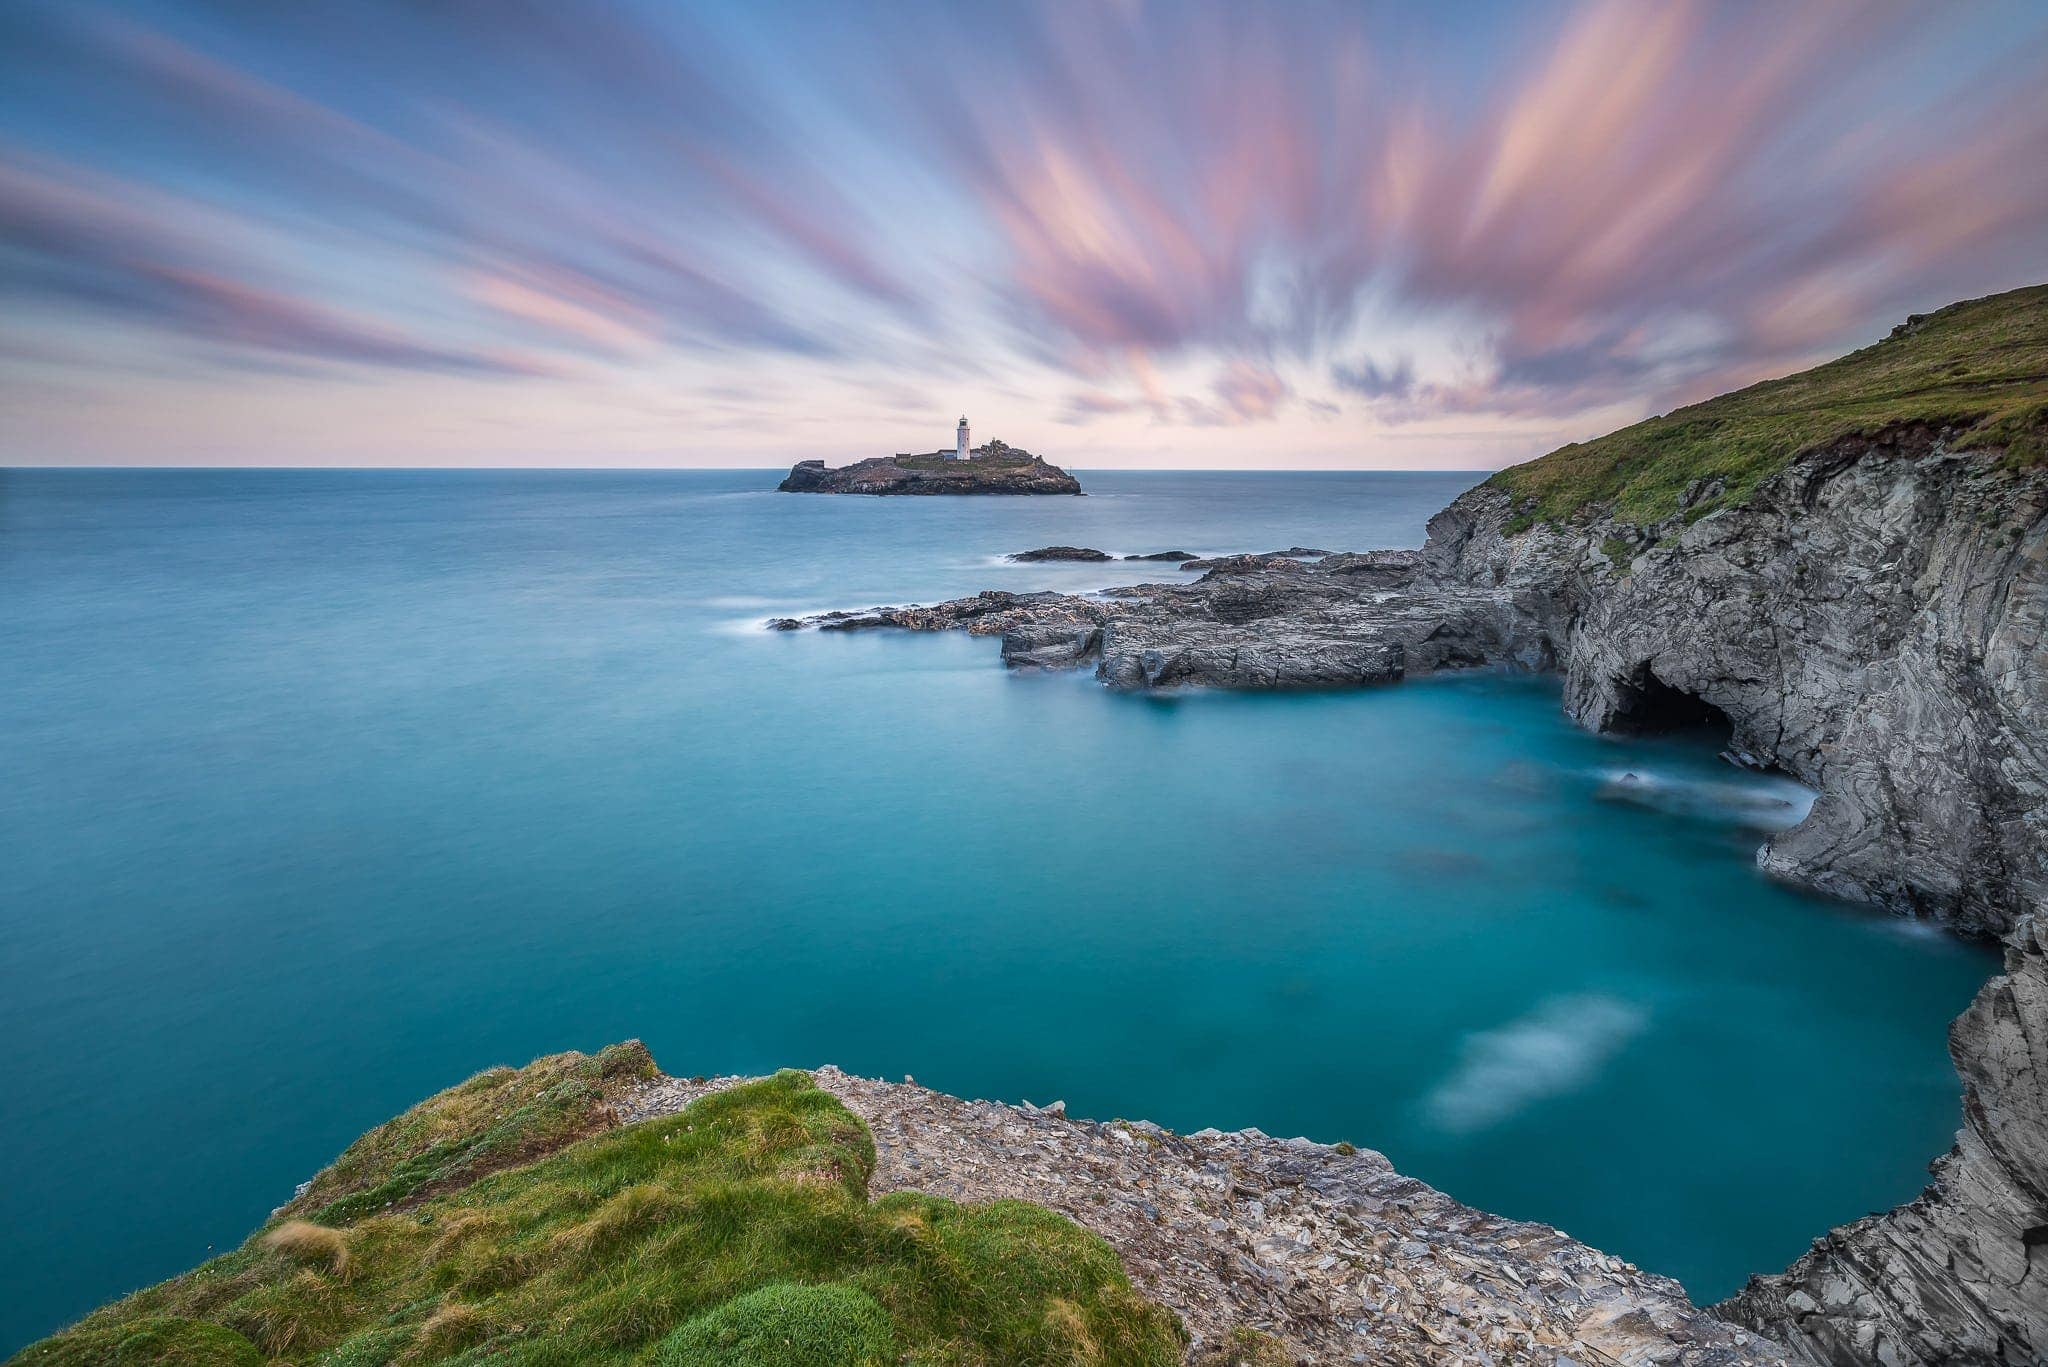 Francesco Gola Seascape Landscape Photography uk Cornwall Godrevy Lighthouse Long Exposure